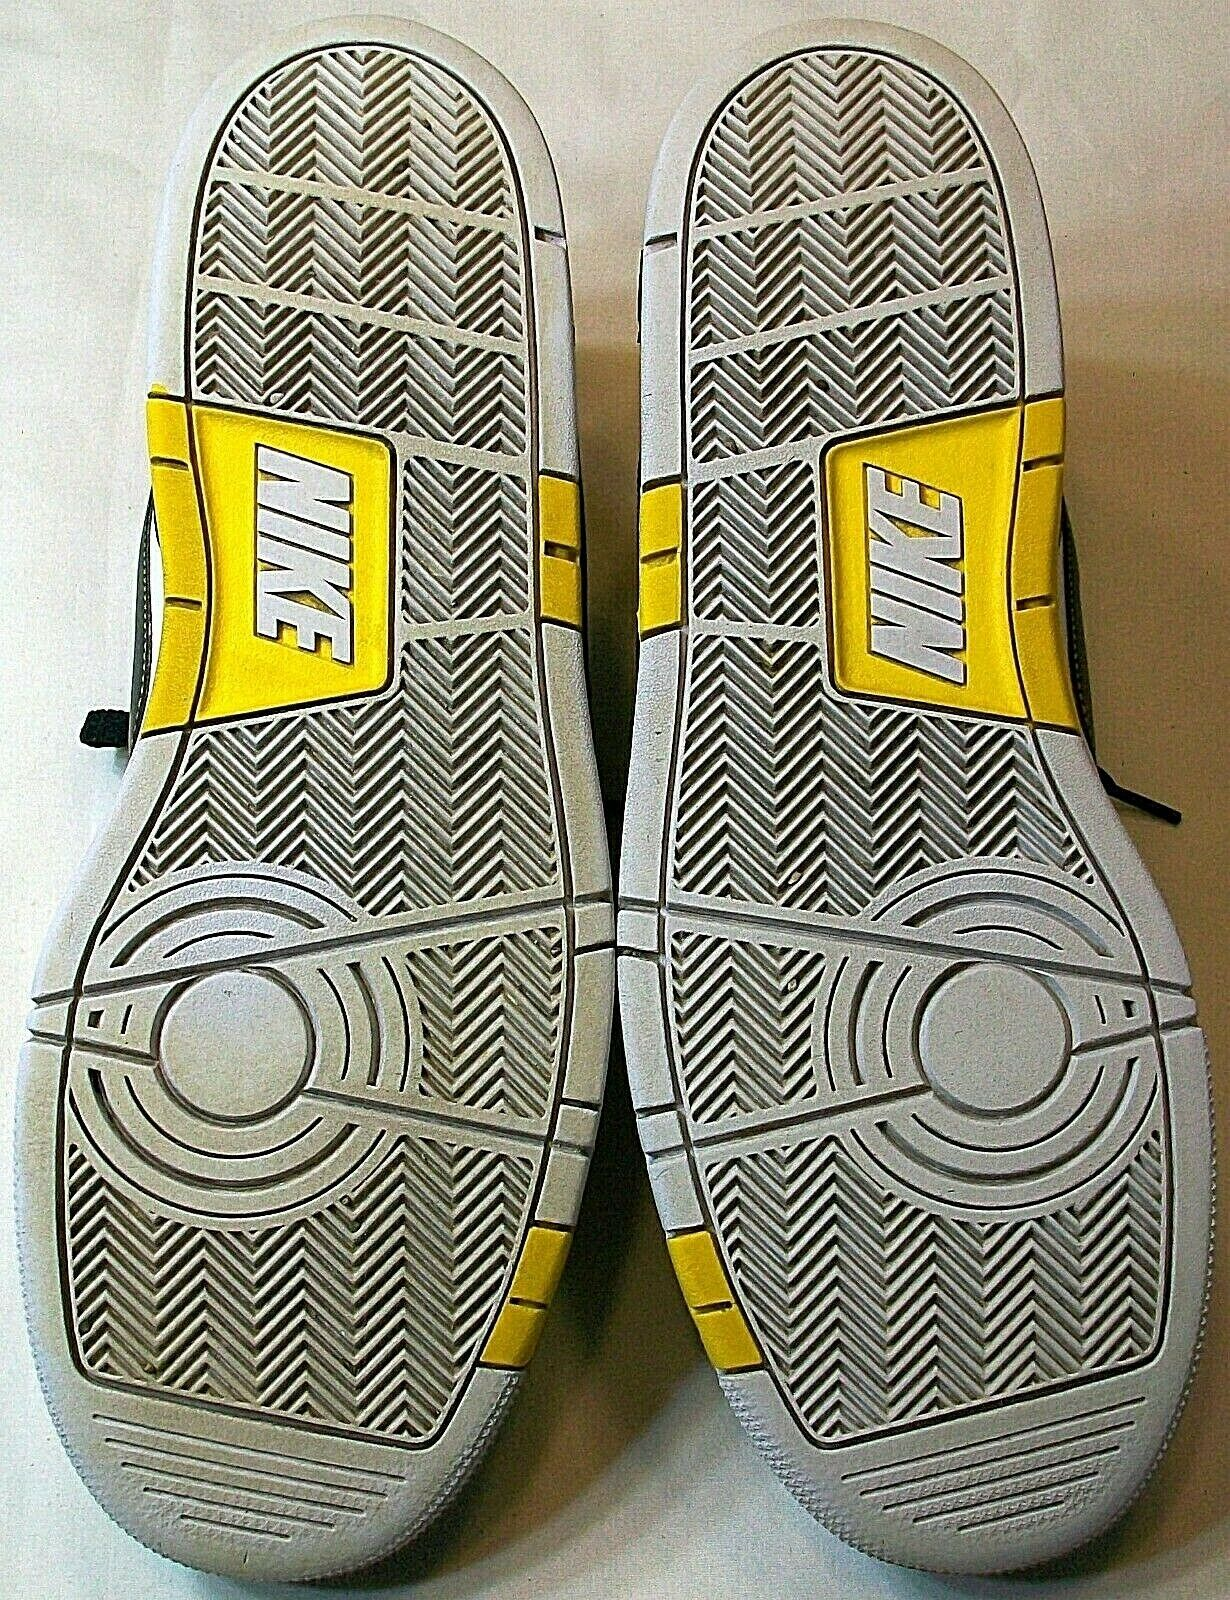 Nike Air Prestige III Men's Size 15 386114-117 White Black Yellow Very Good Used